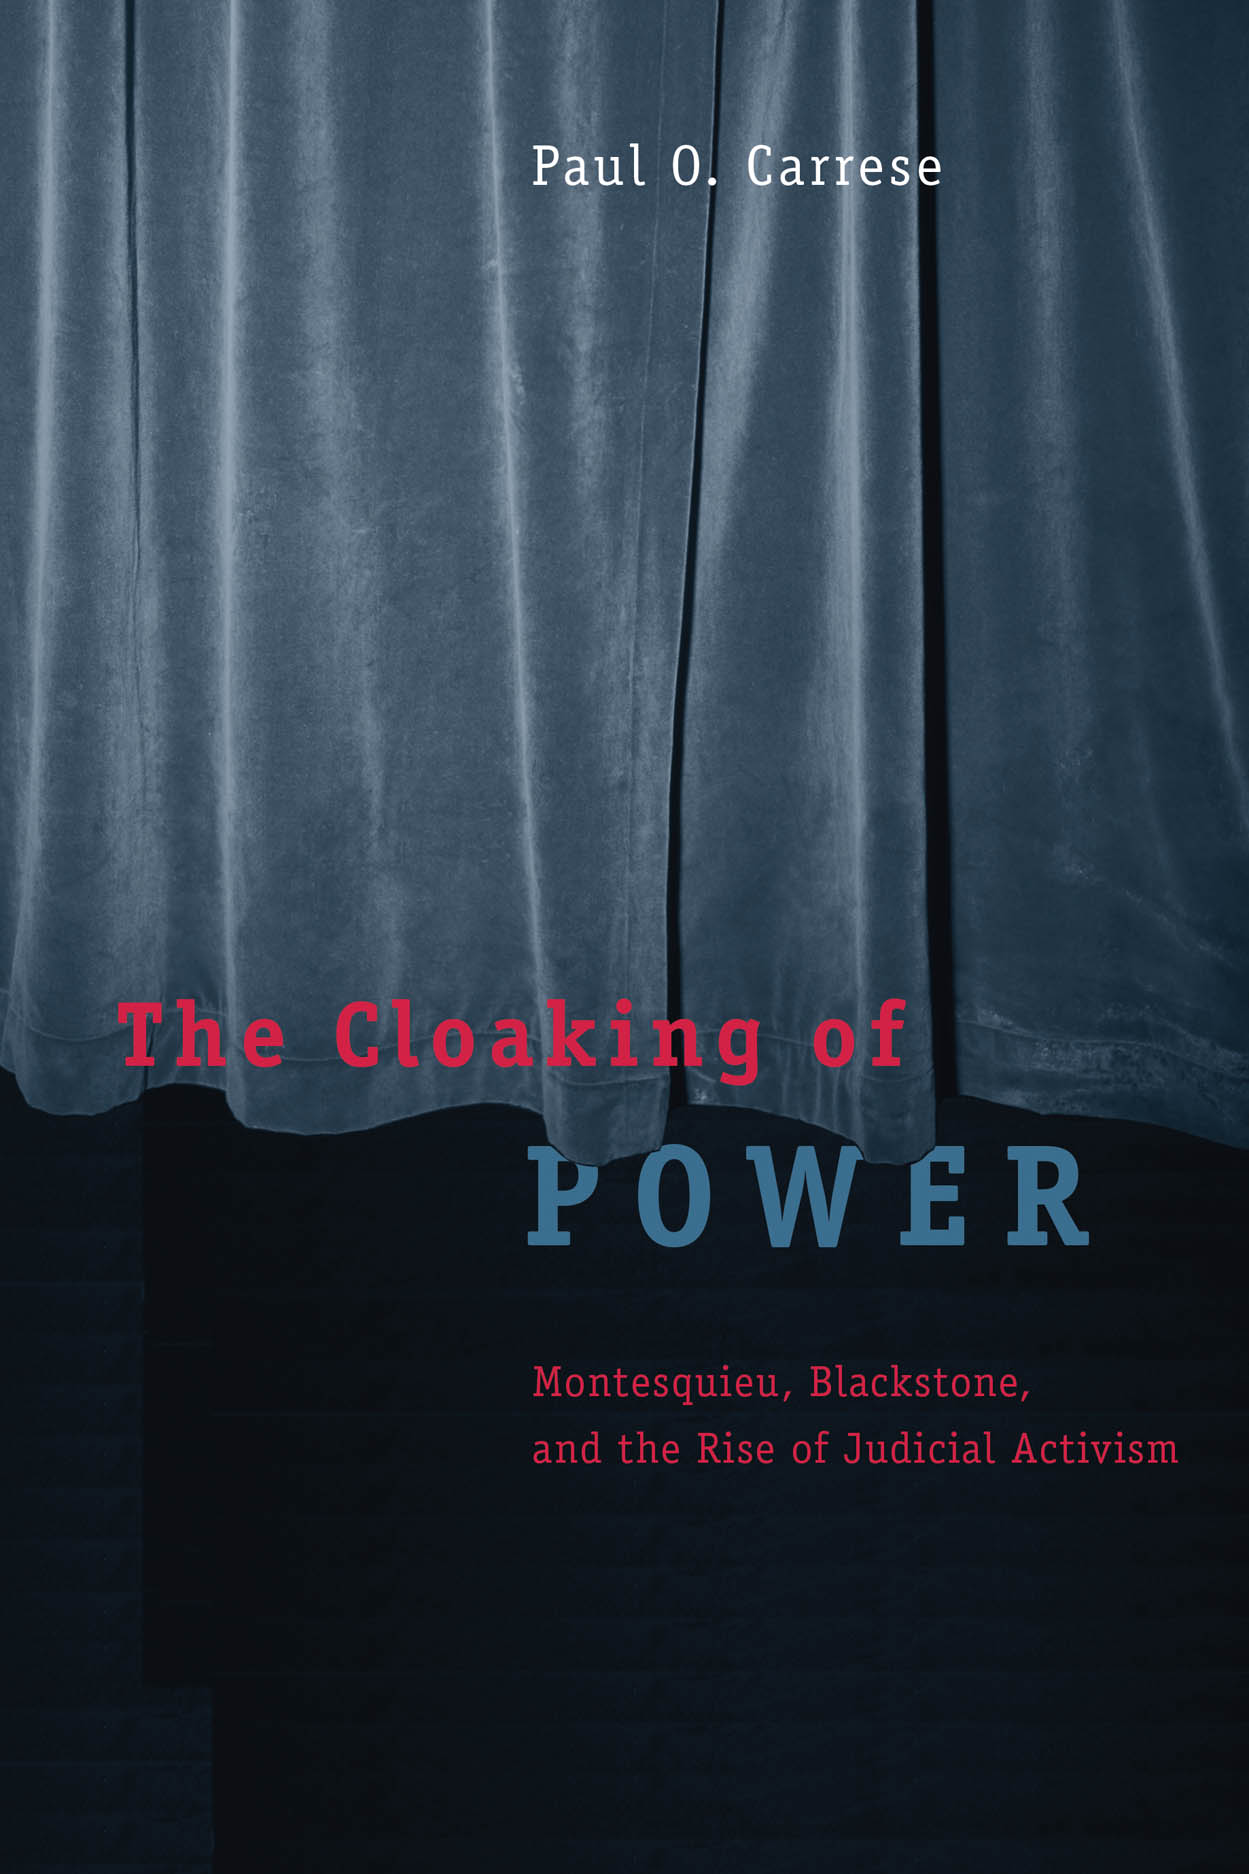 The Cloaking of Power: Montesquieu, Blackstone, and the Rise of Judicial Activism